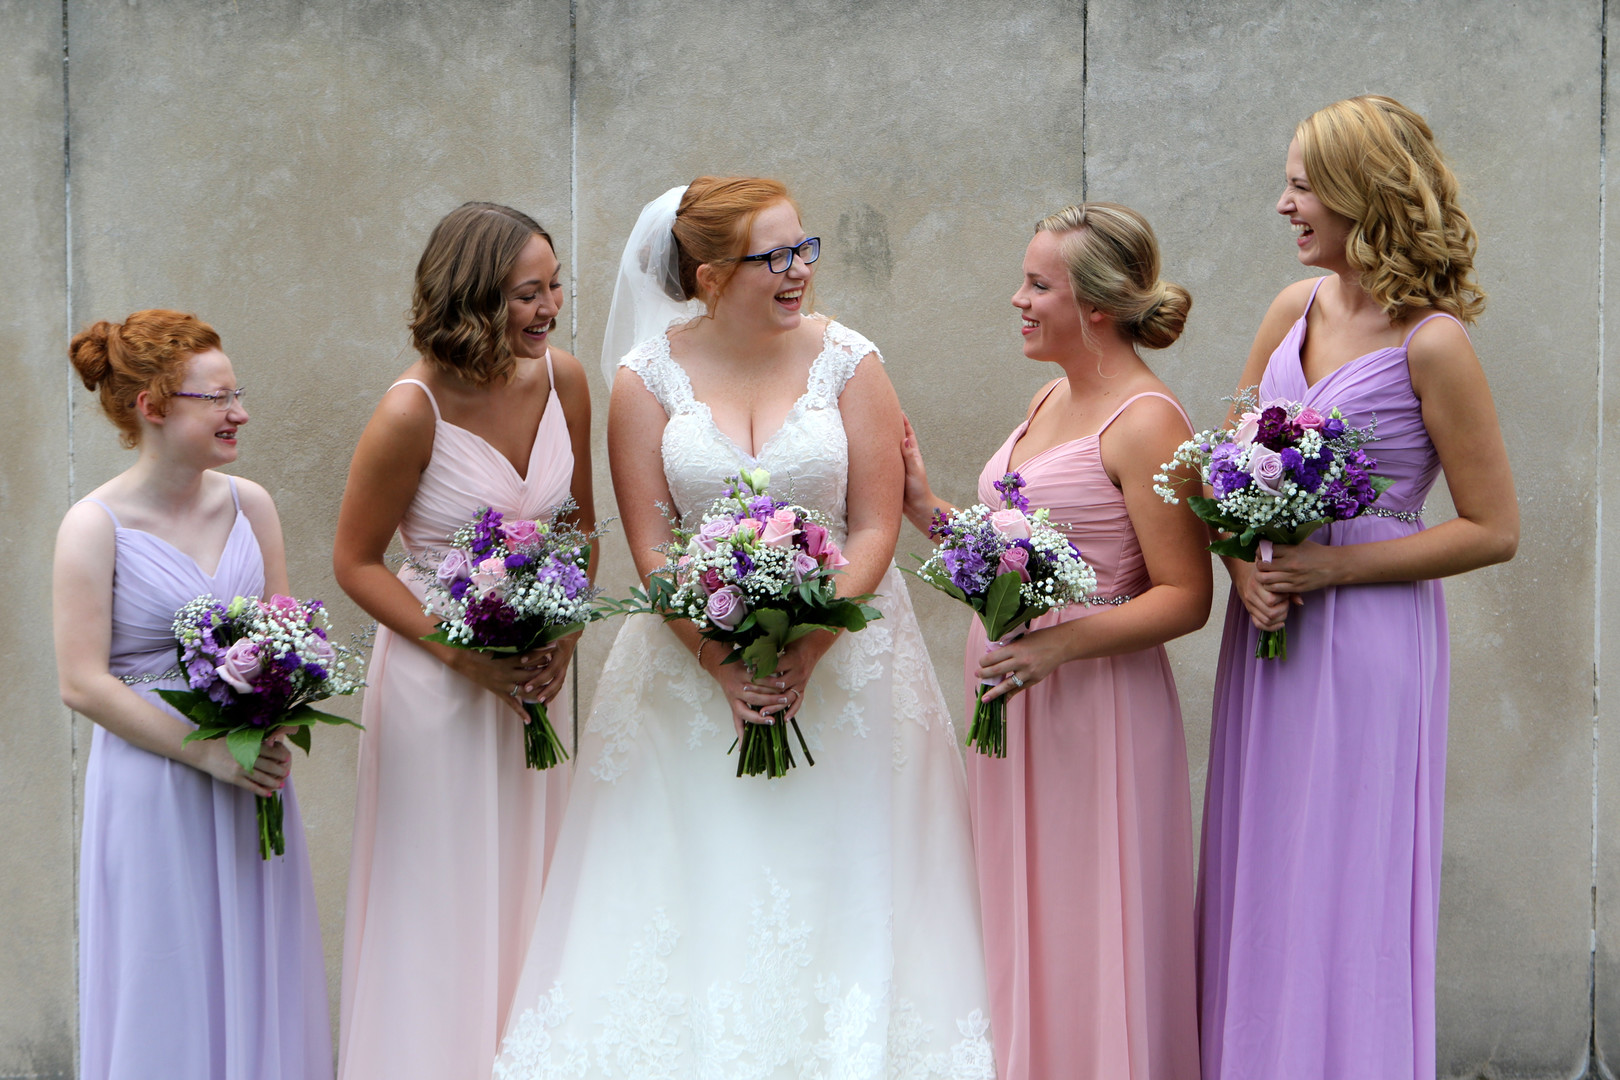 Pastel bridesmaids dresses: Pastel and luscious floral wedding inspiration captured by Messy Photography. See more wedding inspiration ideas at CHItheeWED.com!